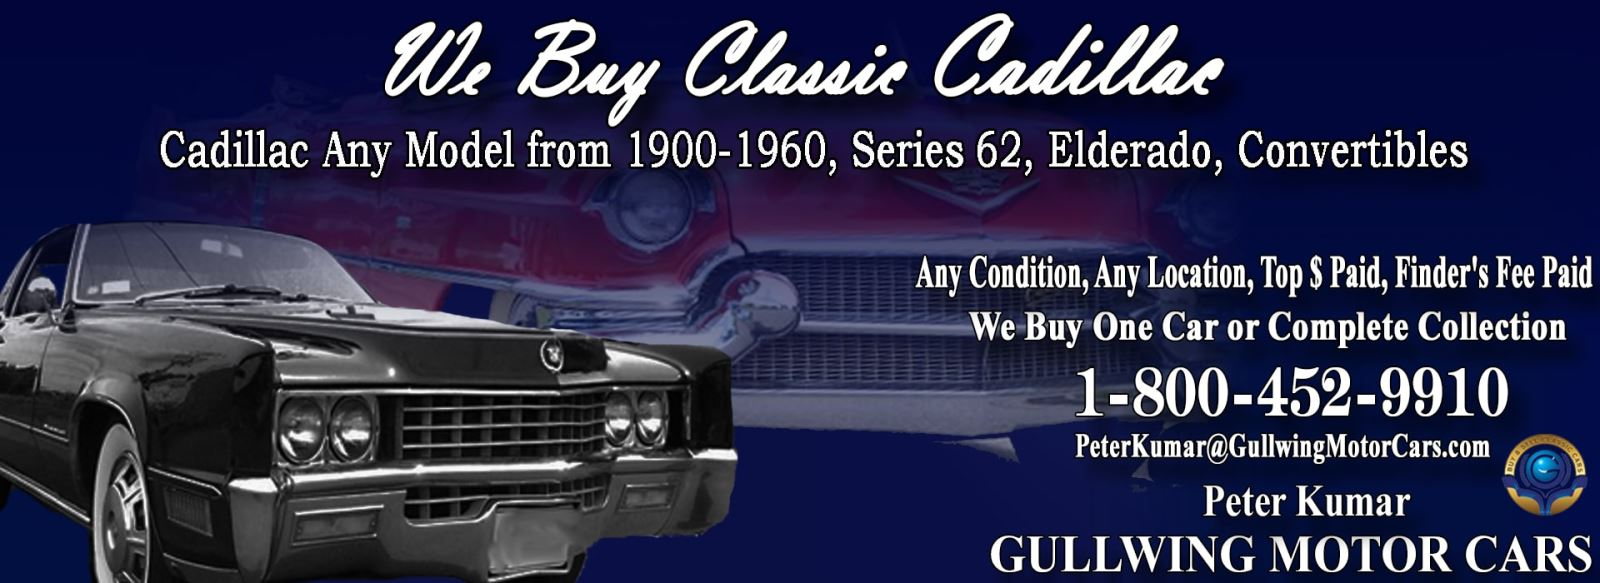 Classic Cadillac Eldorado for sale, we buy vintage Cadillac Eldorado. Call Peter Kumar. Gullwing Motor